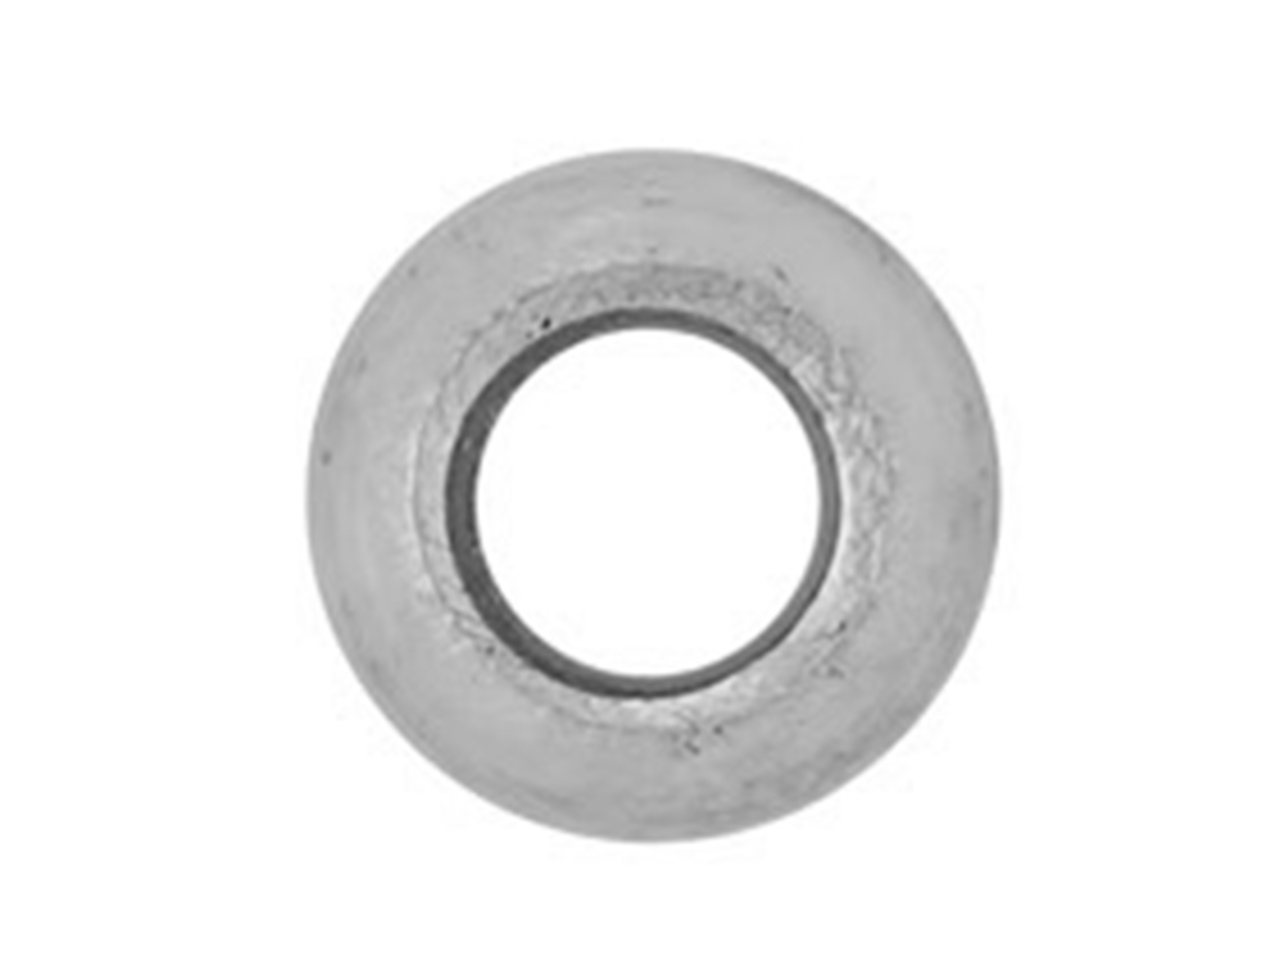 Bate 04450 conique 5,5 x 0,75 mm, Or gris 18k